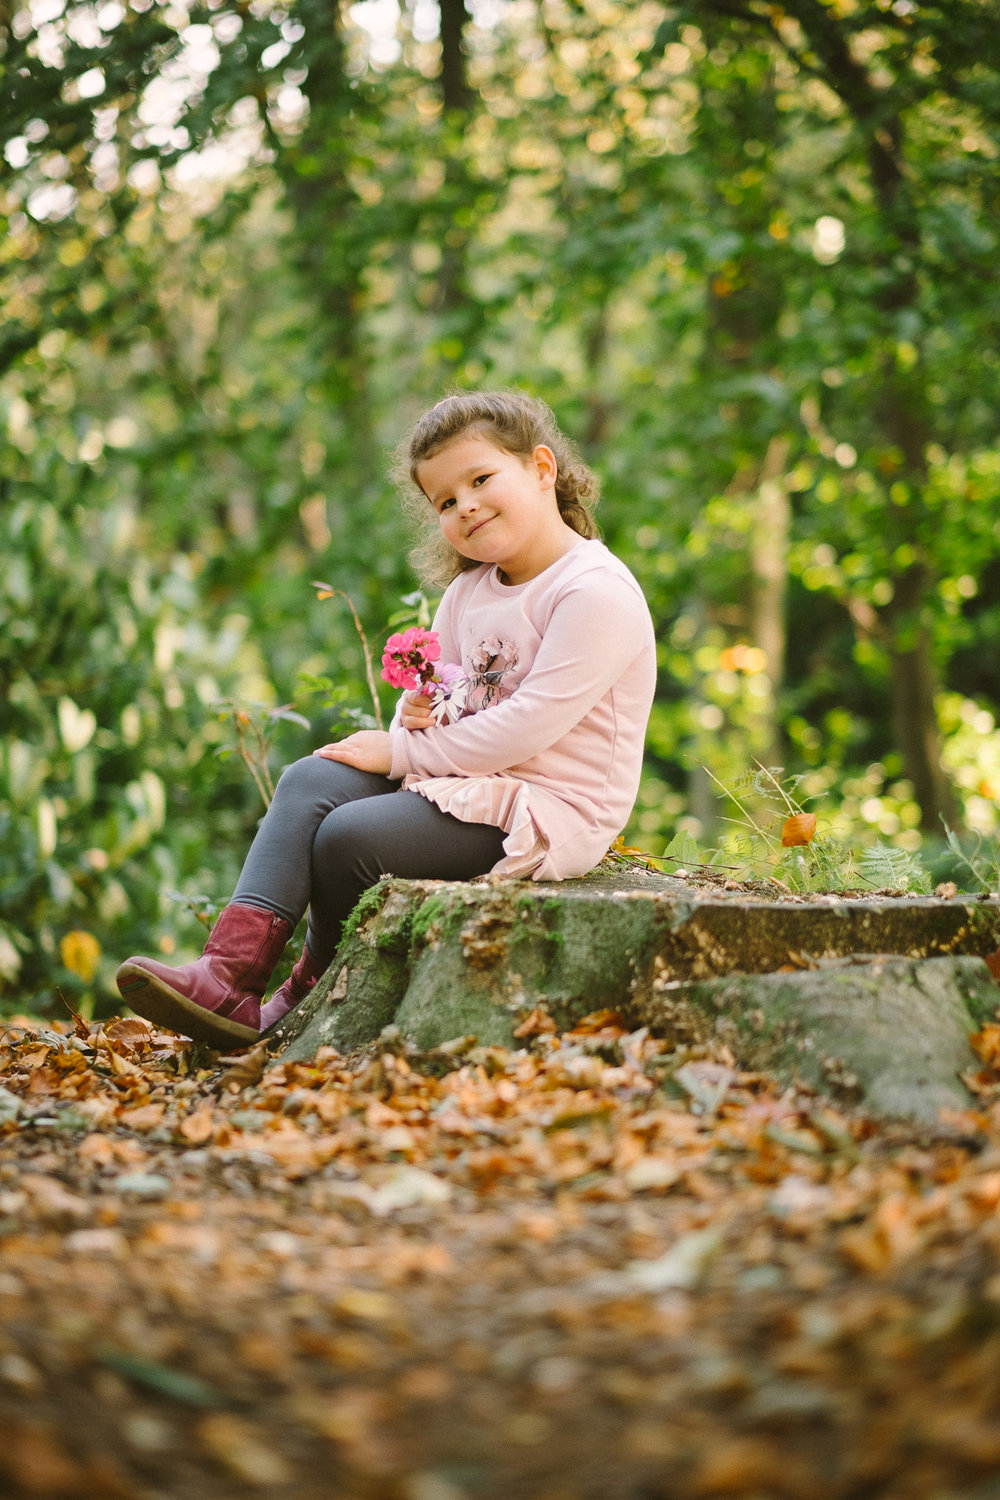 Outdoor sessions £95 - - Pre-shoot consultation- On location at a park or beach. Think Jesmond Dene or Tynemouth Longsands.- Up to 2 hour shoot (includes travelling)- Up to 50 high res photos ready to print- Password protected online gallery- Minimum age 4 months